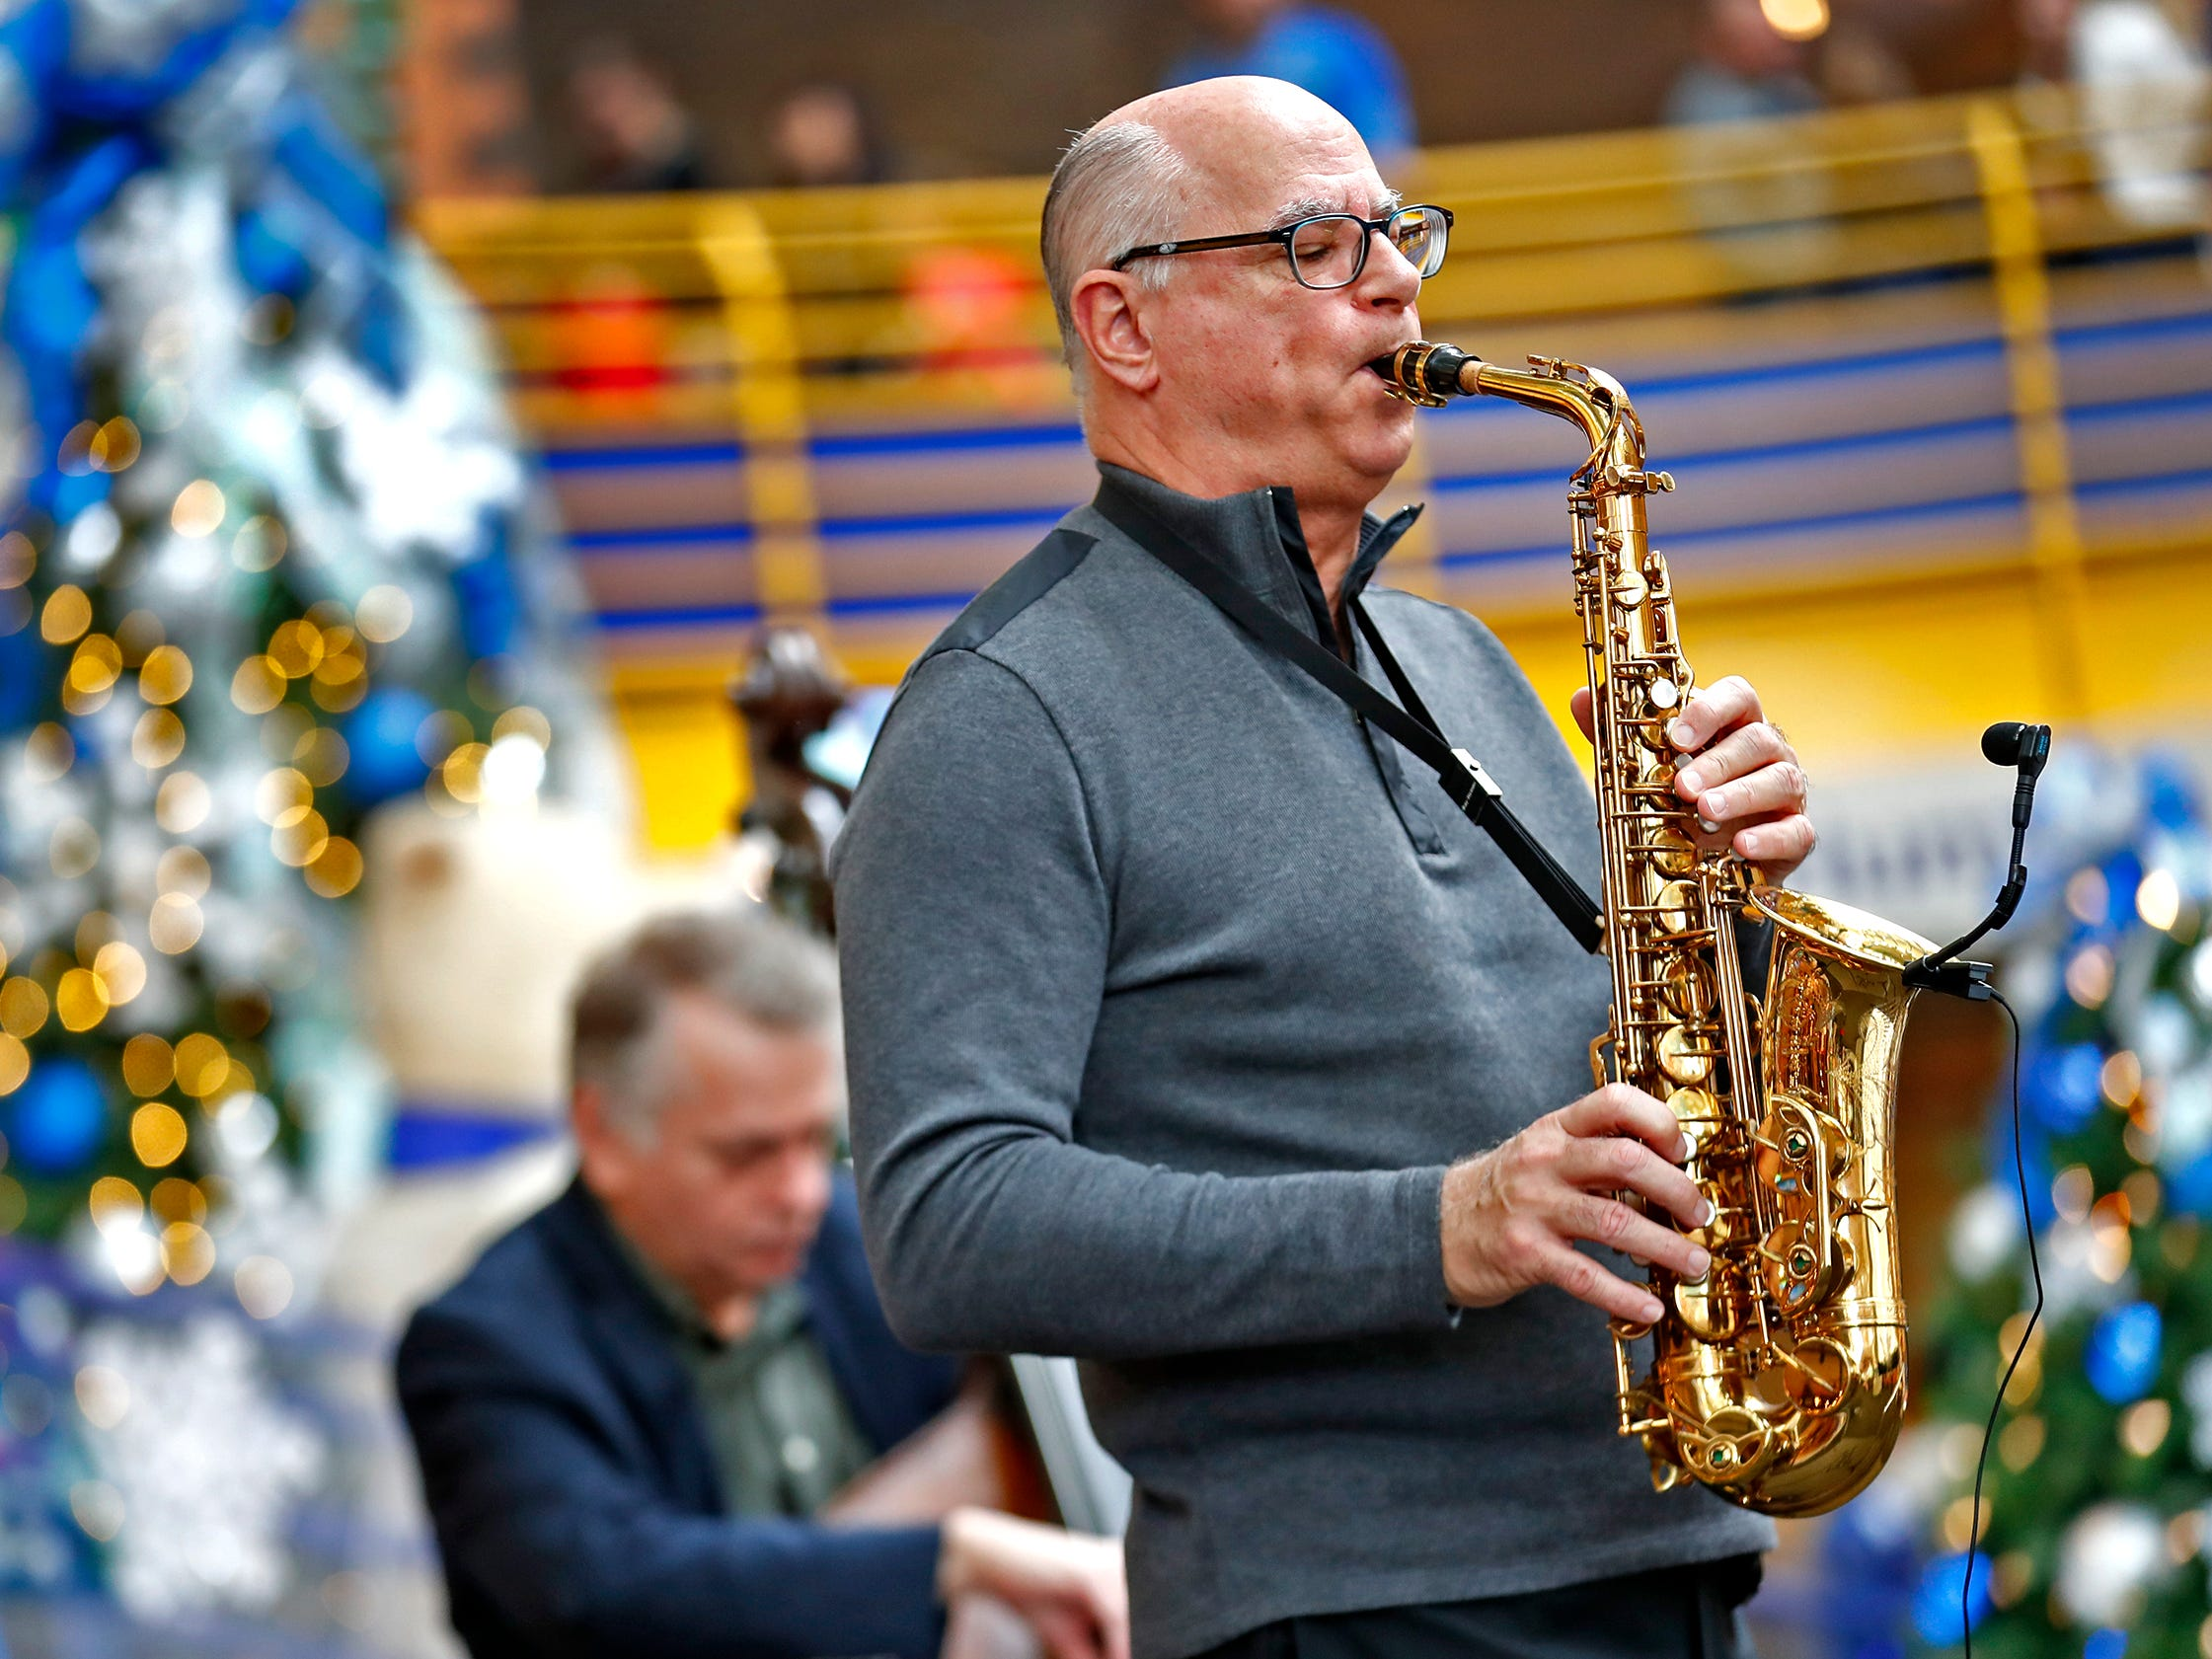 Children's Museum of Indianapolis President and CEO Jeff Patchen plays the saxophone with his group, Jeff Patchen and the Ken Fary Trio, during the opening ceremony for Jolly Days Winter Wonderland at the Museum, Friday, Nov. 23, 2018.